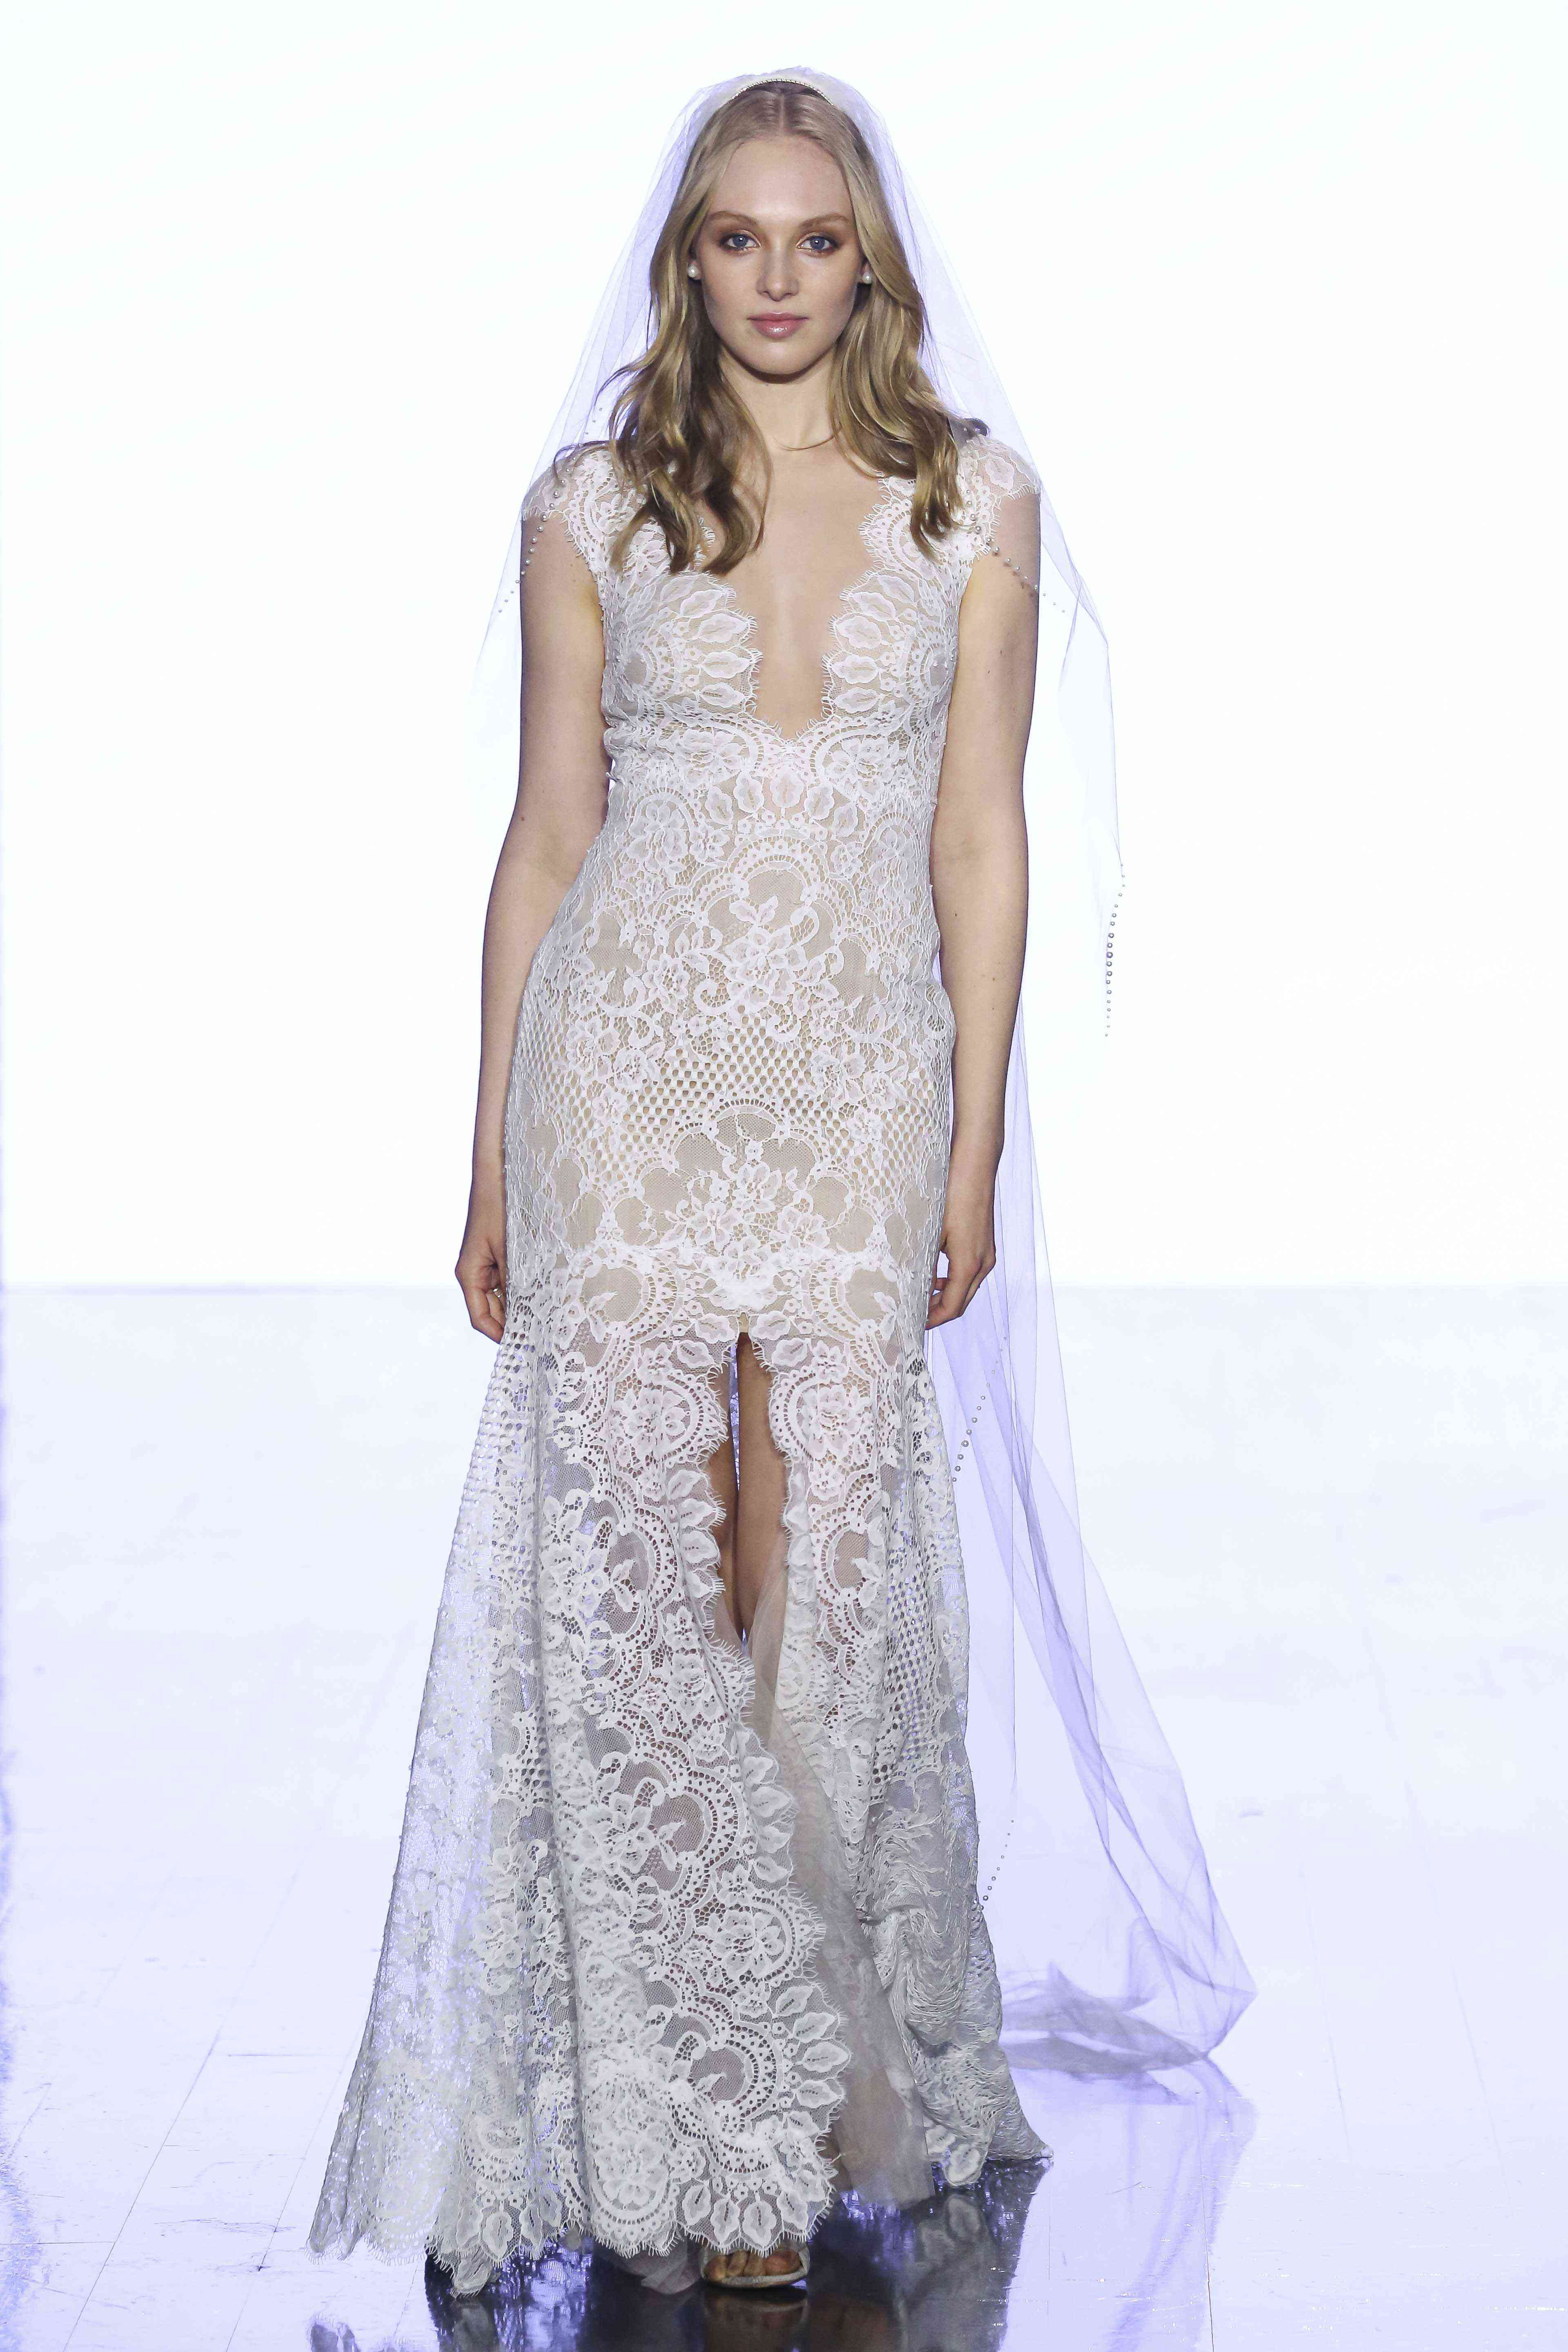 Model in allover lace sheath gown with a plunging neckline, cap sleeves, and front slit